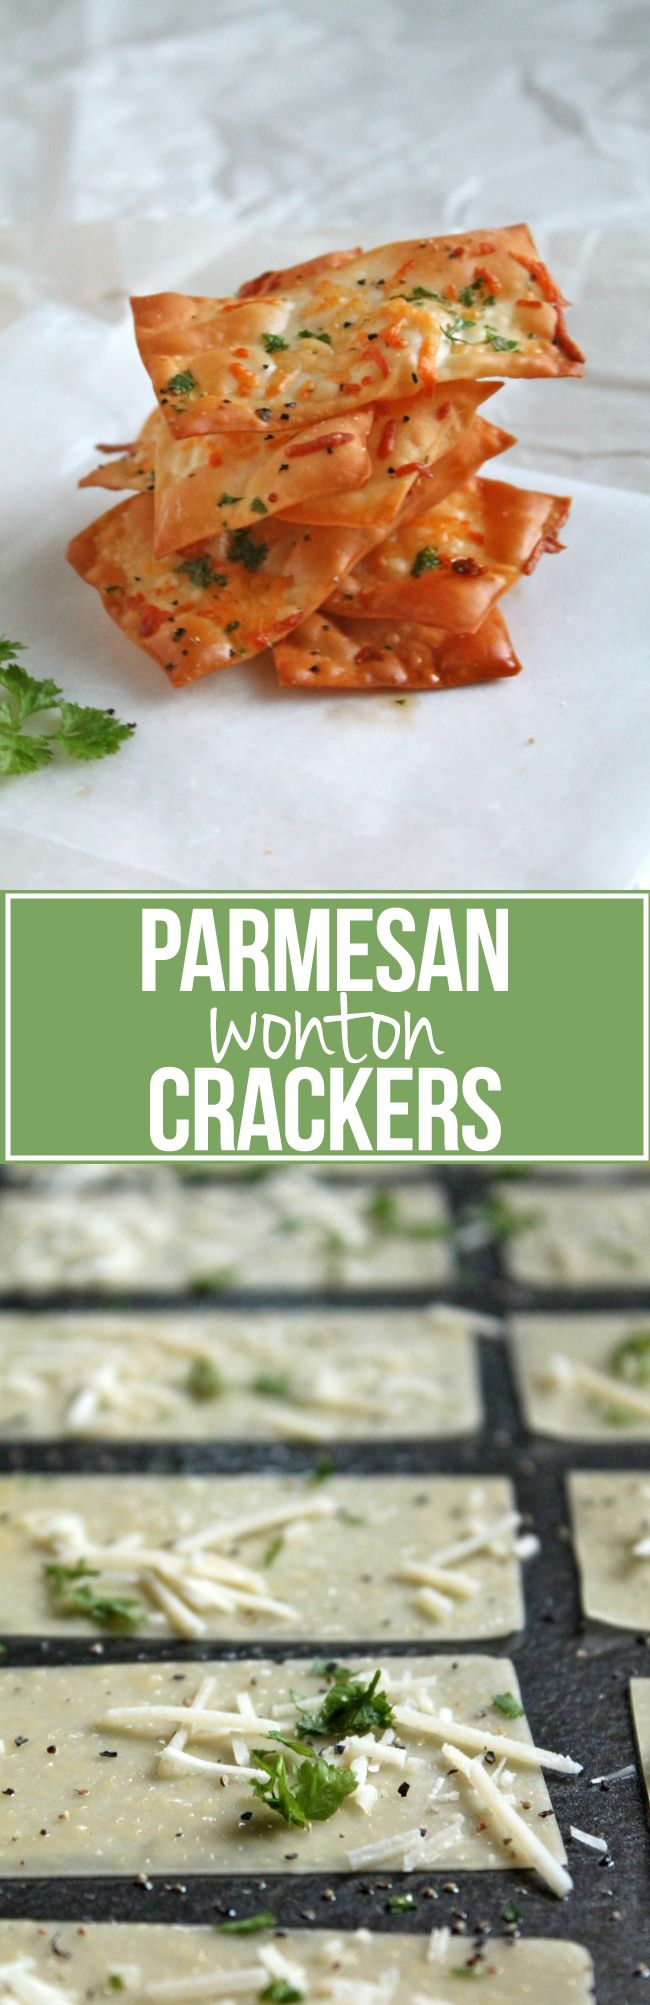 Parmesan Wonton Crackers. What to do with leftover wonton wrappers.